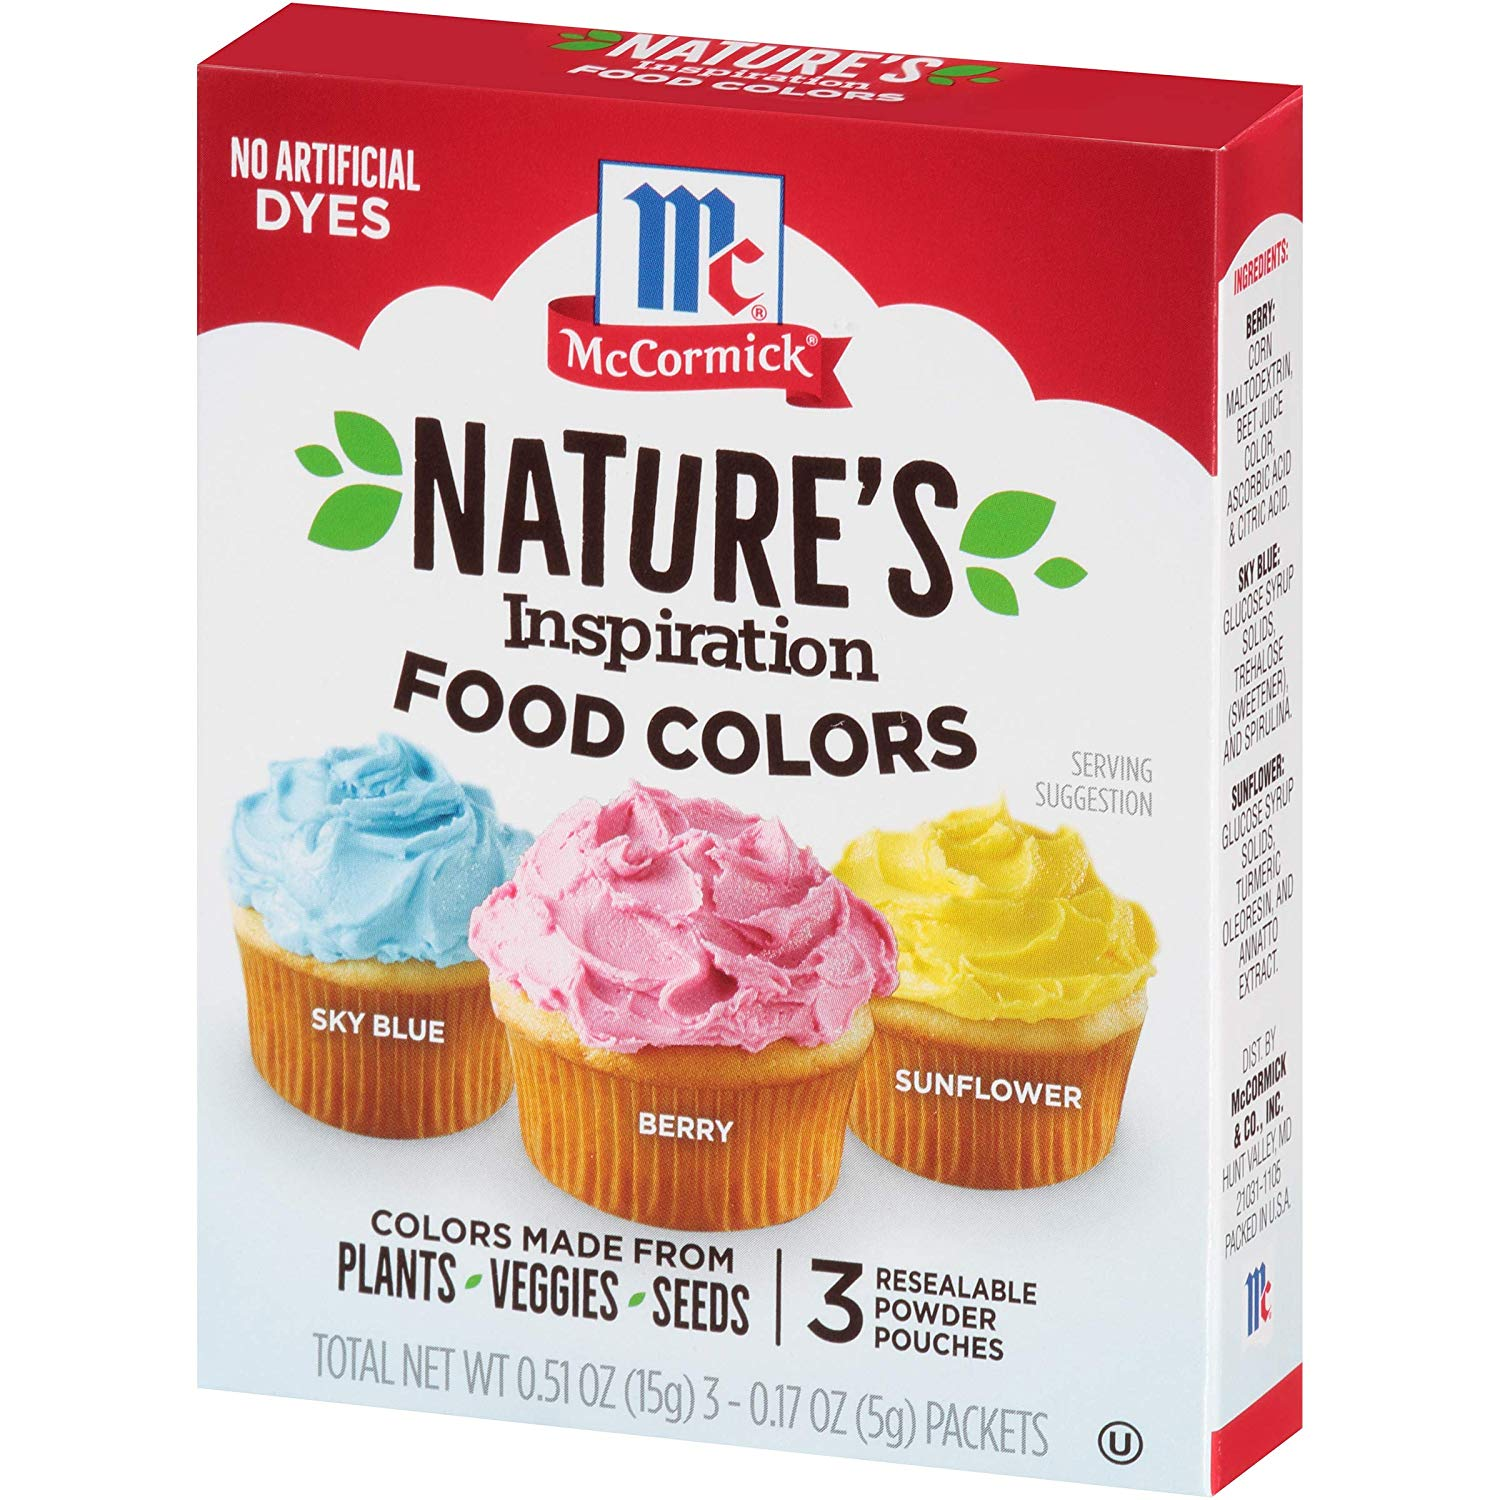 The Best Food Coloring Kits You Can Buy on Amazon – SheKnows